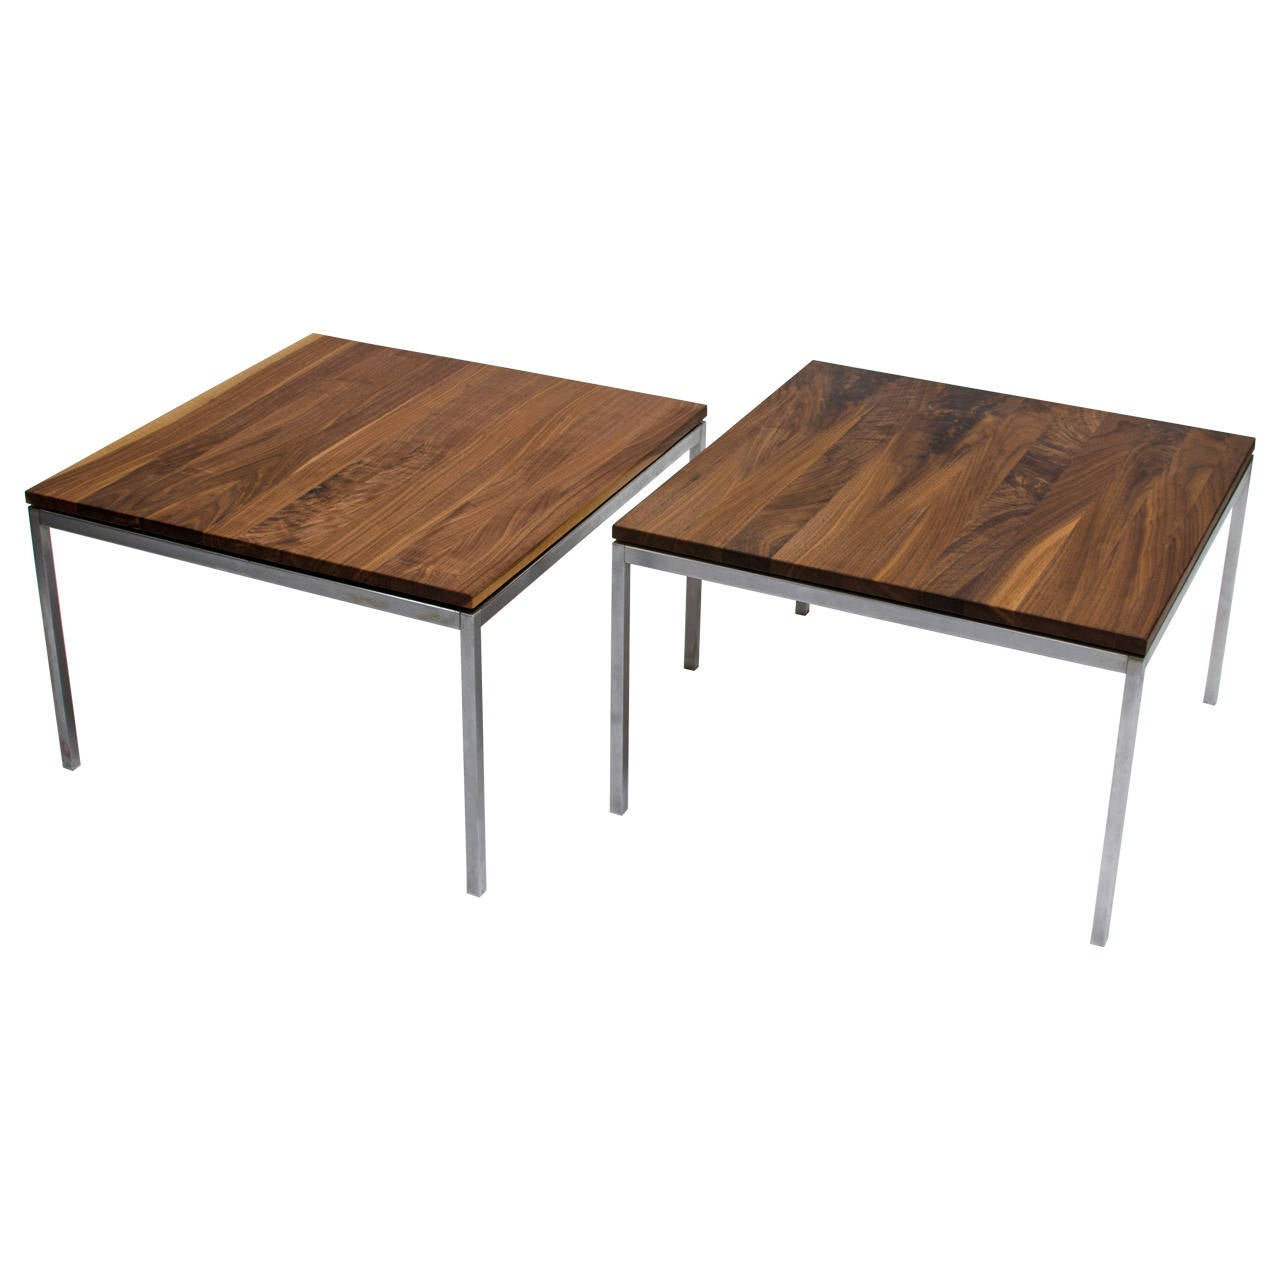 Florence knoll solid steel and walnut floating top coffee or side table 1950s at 1stdibs Side and coffee tables